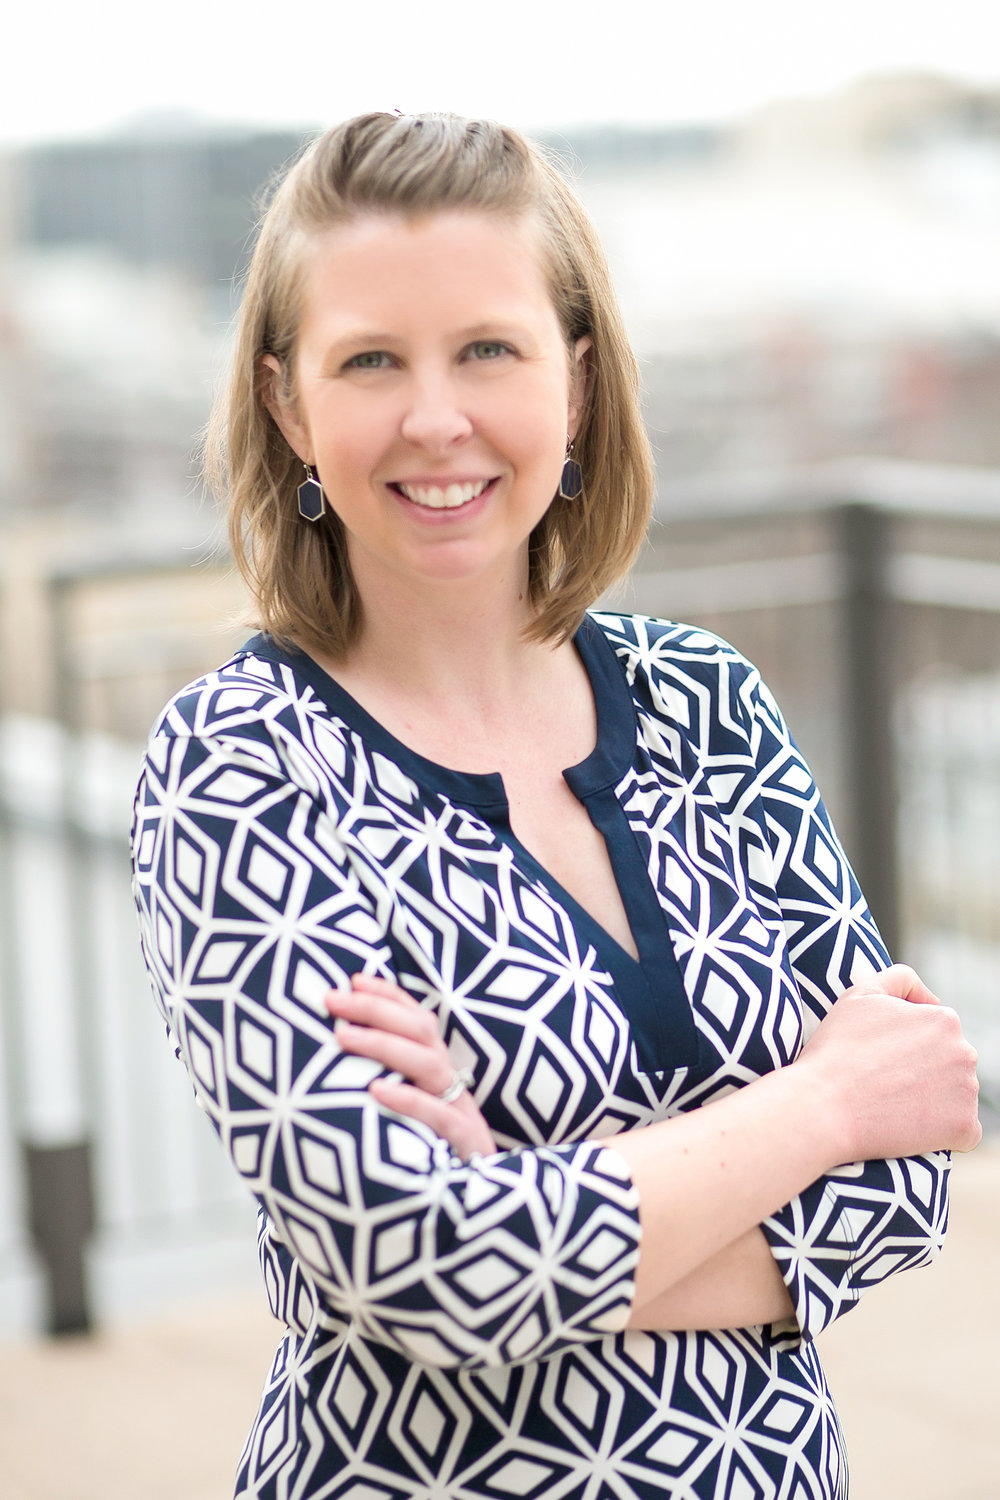 Ellen Merker - Founding DirectorEllen Merker, LPC-IT, started Heart Consulting LLC in 2017, after seeing the need for more resources around sexual assault and domestic violence in the disability community. After receiving her Master's degree in Rehabilitation Psychology, Ellen worked for over 5 years as a case manager and transition coordinator for adults with developmental disabilities, then as an IRIS Consultant. In 2015, she piloted a program with the Rape Crisis Center to provide education to young adults with developmental disabilities around healthy relationships. Ellen has been selected to present this work at two End Domestic Abuse WI conferences, as well as the Project SEARCH national conference.